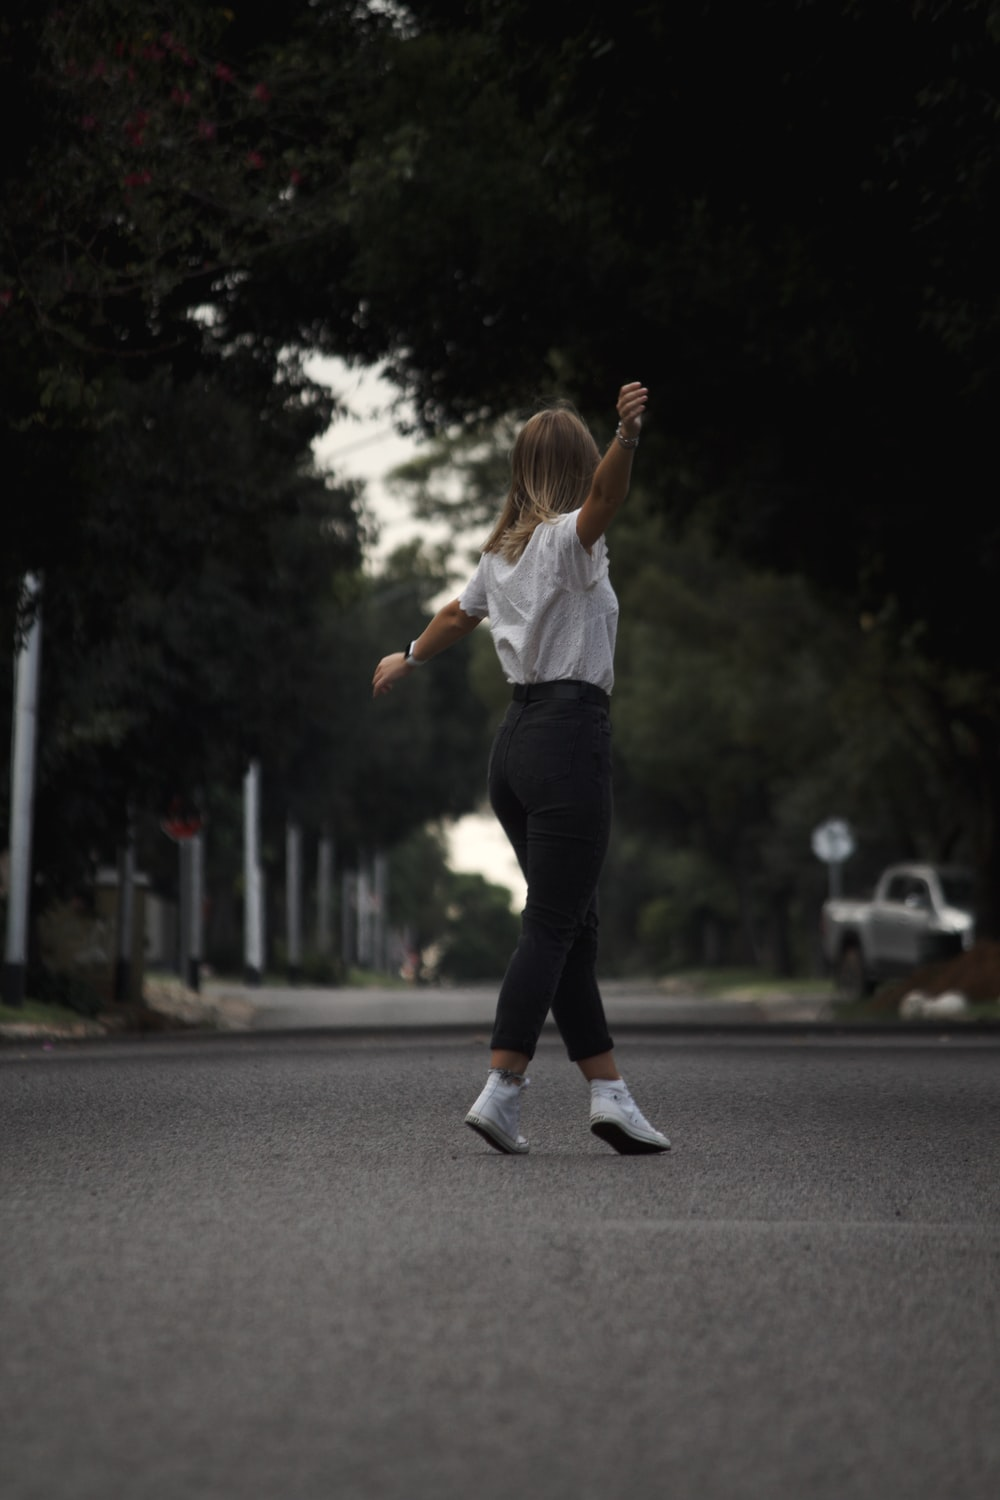 woman in white shirt and black pants running on road during daytime